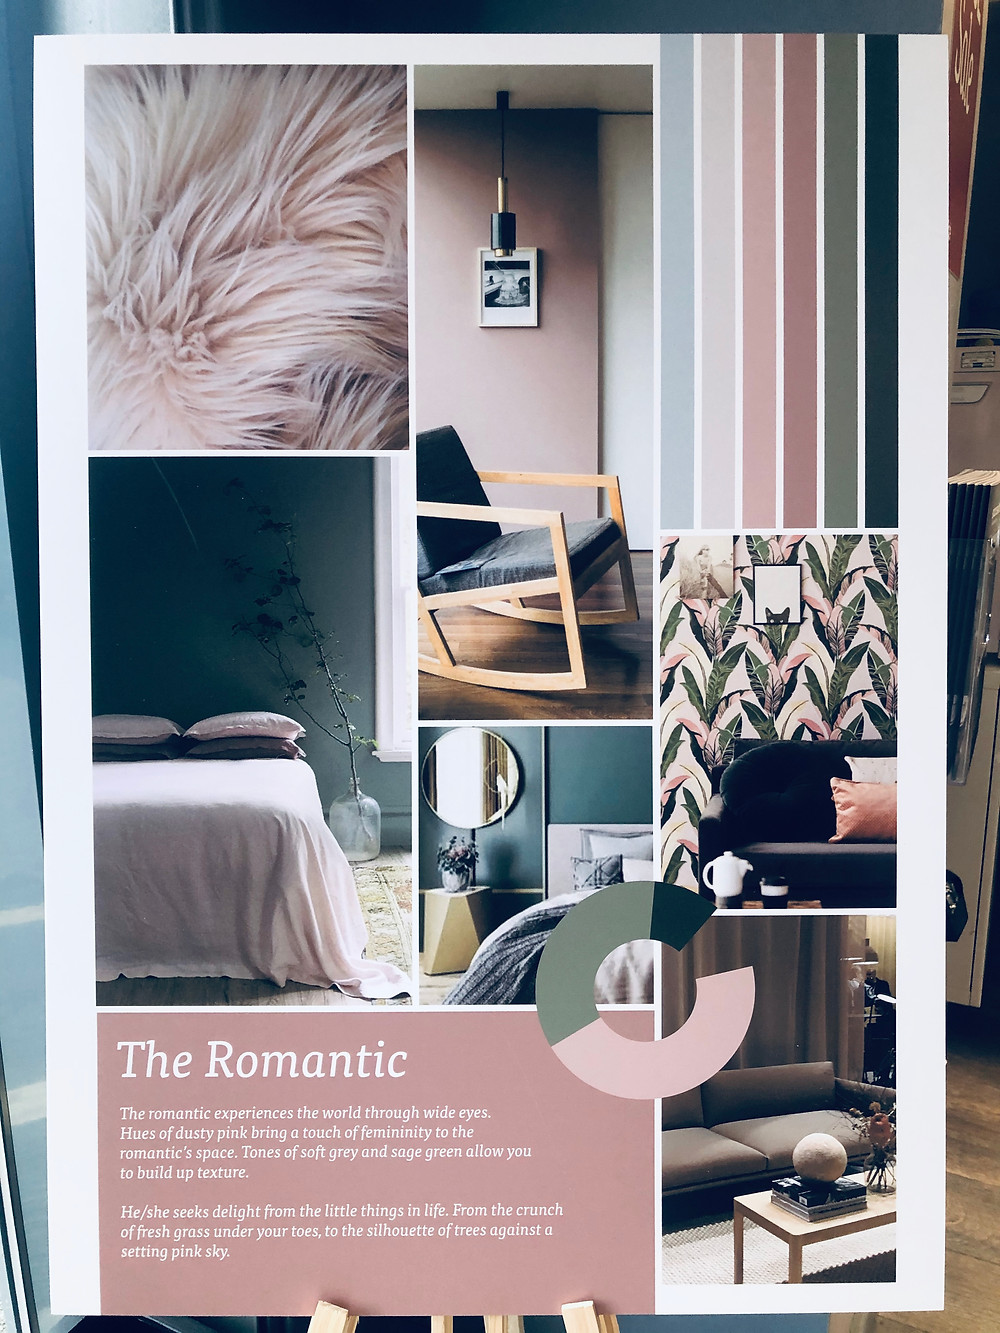 image shows examples of pinks and greens within a room